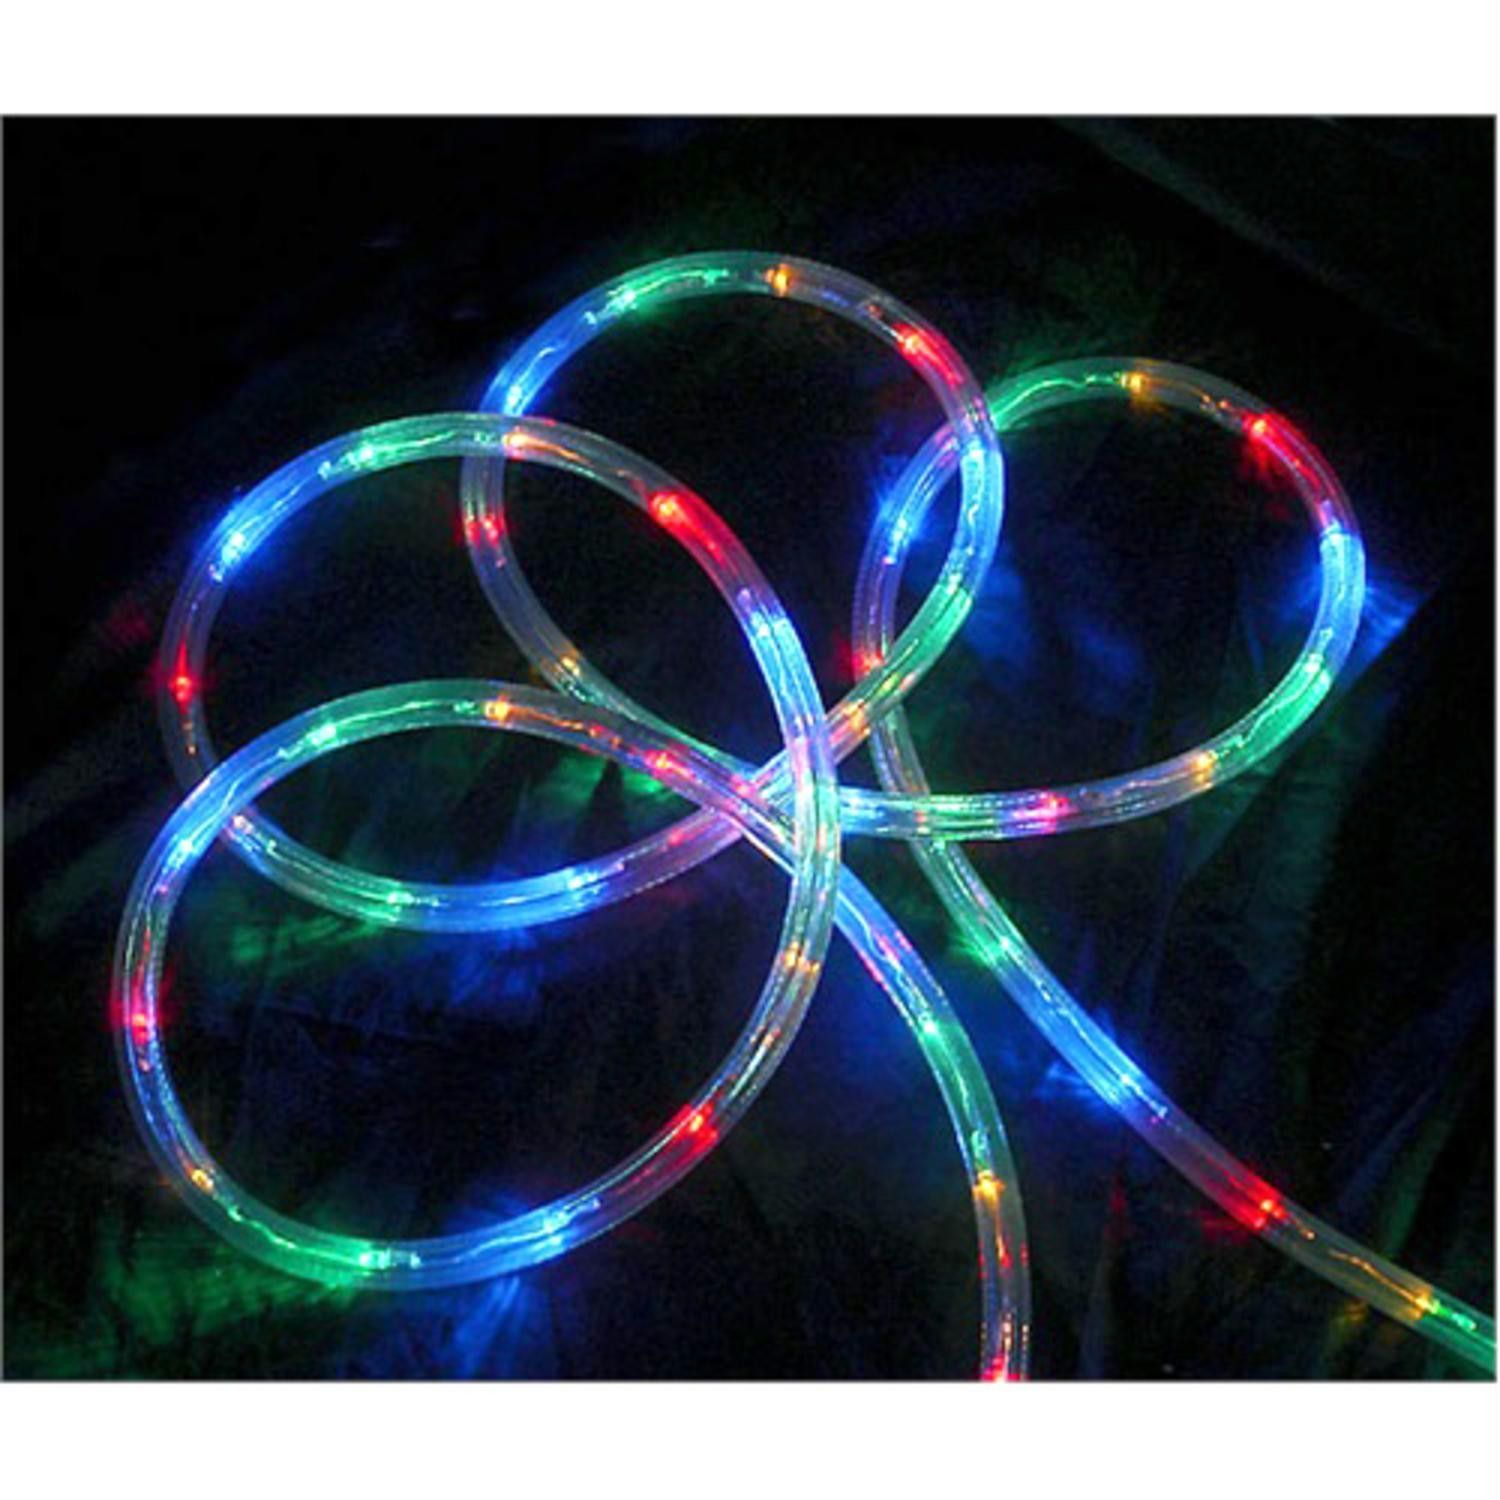 18 multi color led indoor outdoor christmas rope lights 2 bulb 18 multi color led indoor outdoor christmas rope lights 2 bulb aloadofball Images